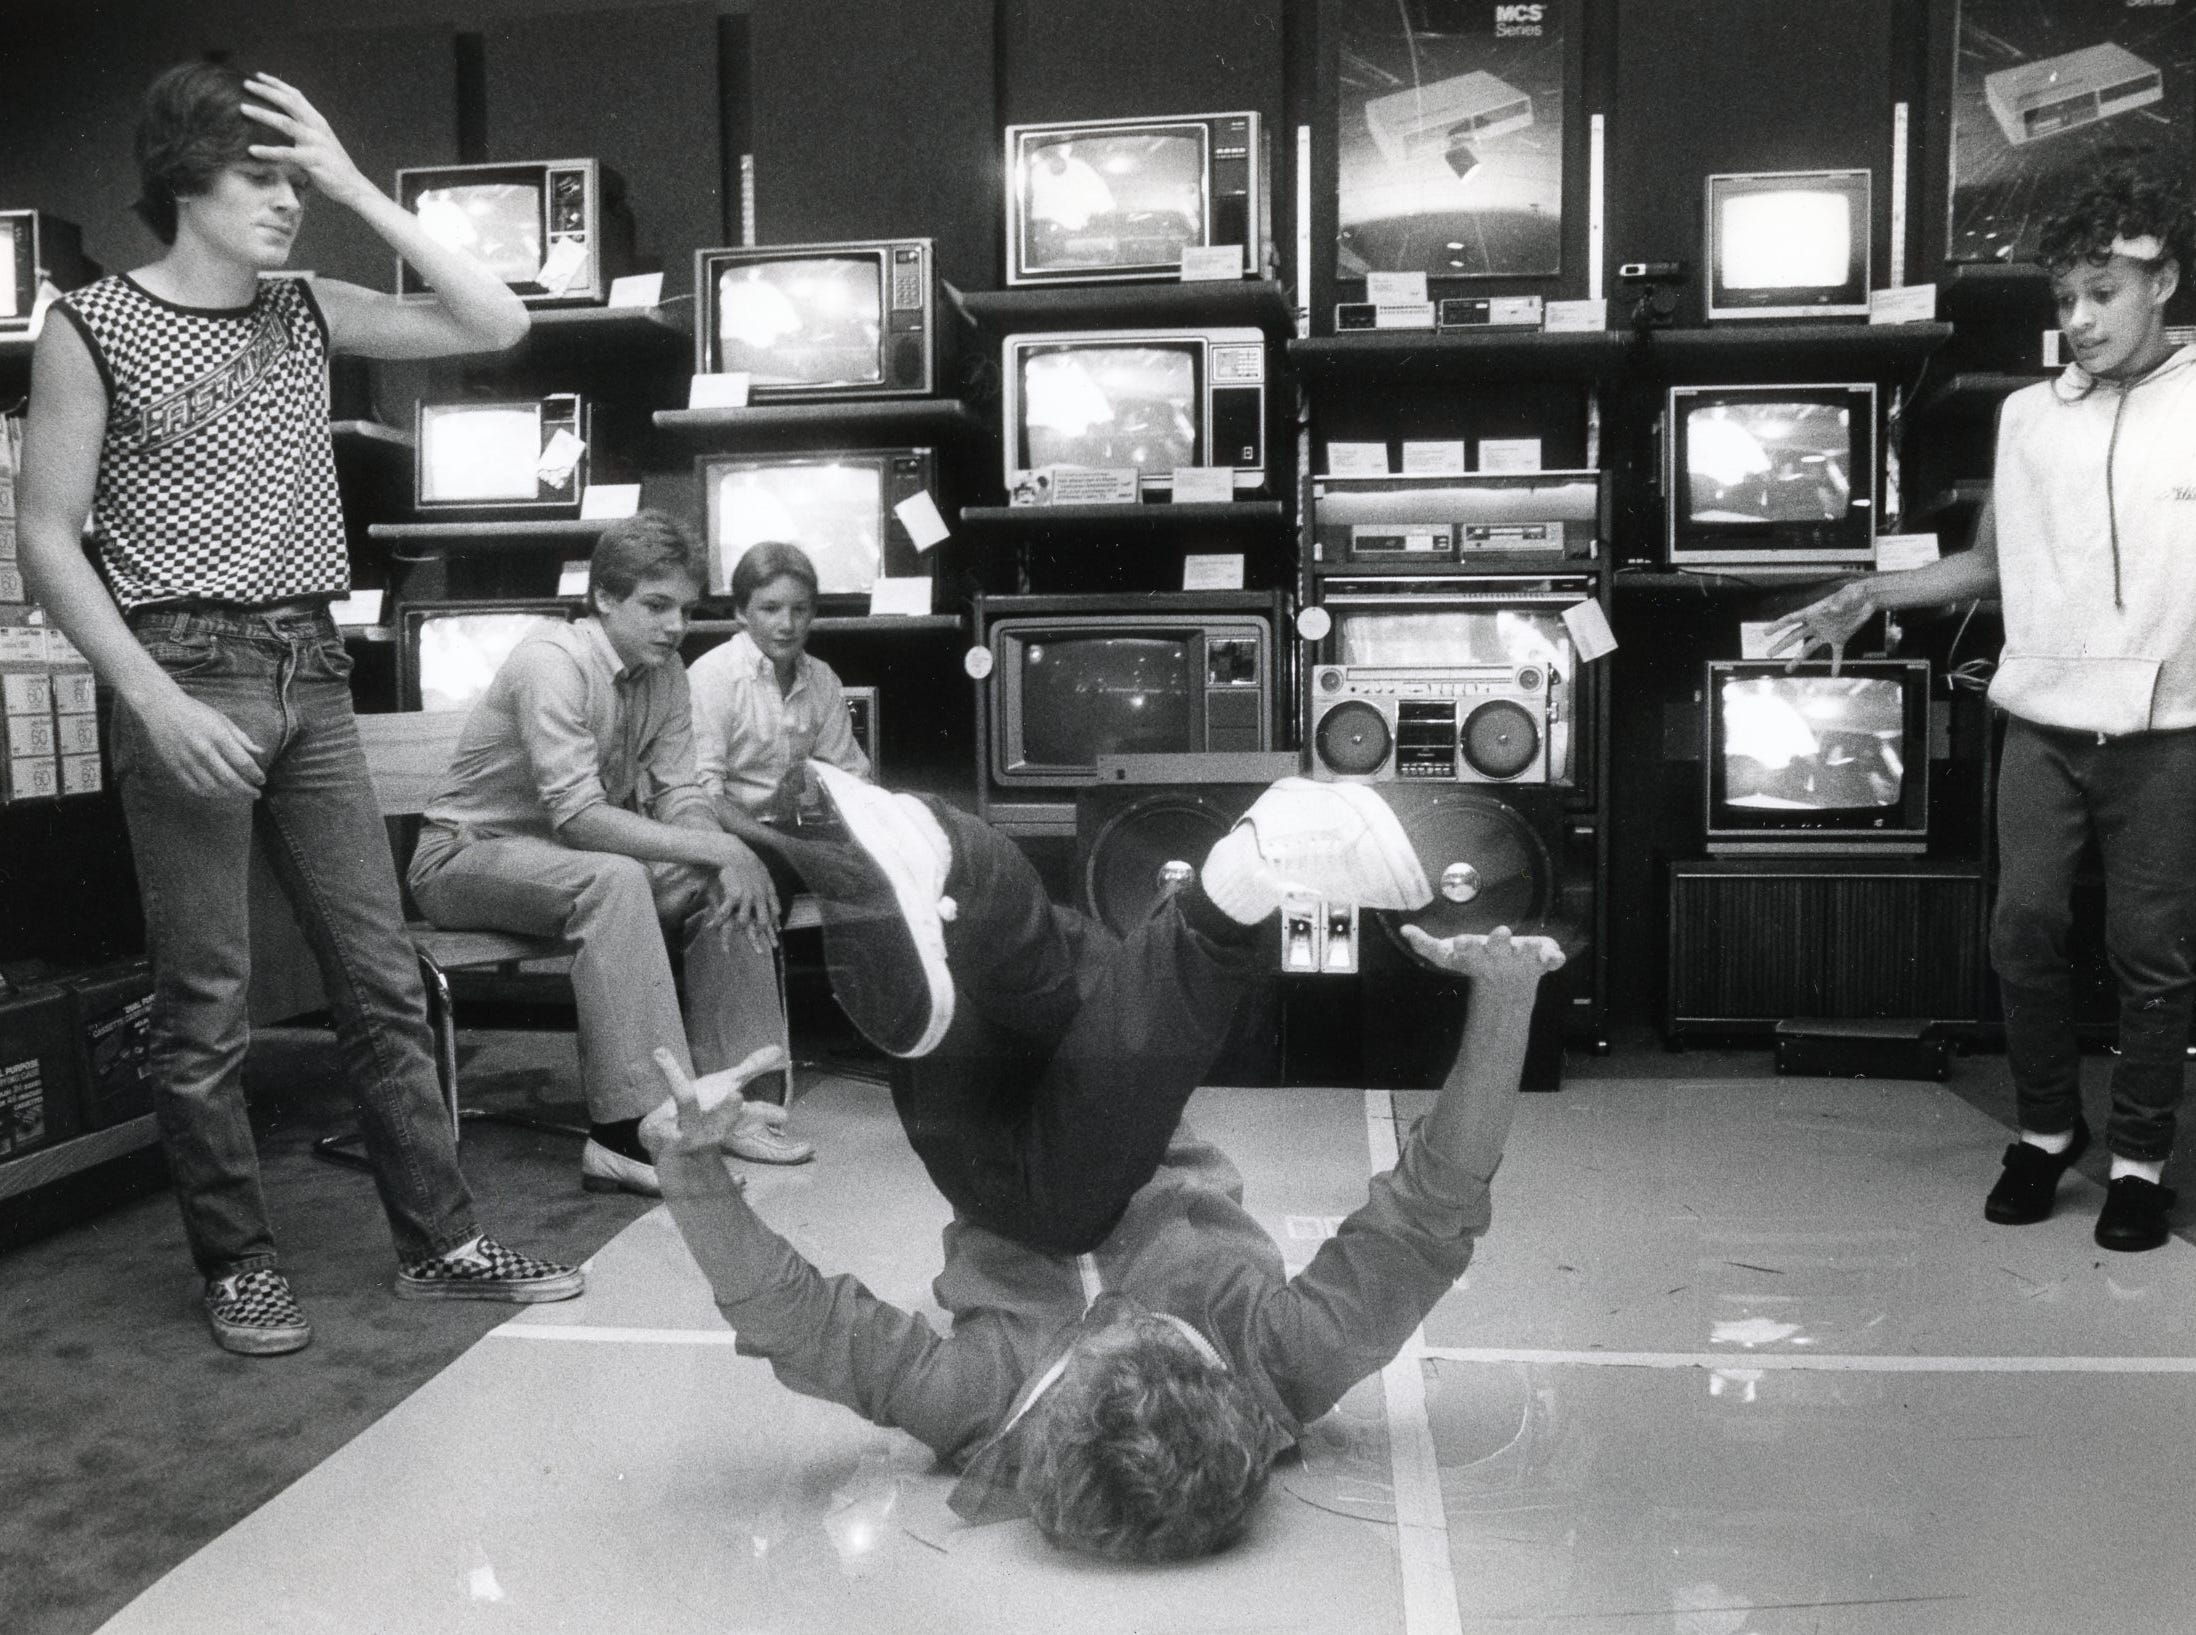 A break dancer performs for a crowd of friends at East Towne Mall, July, 1984.